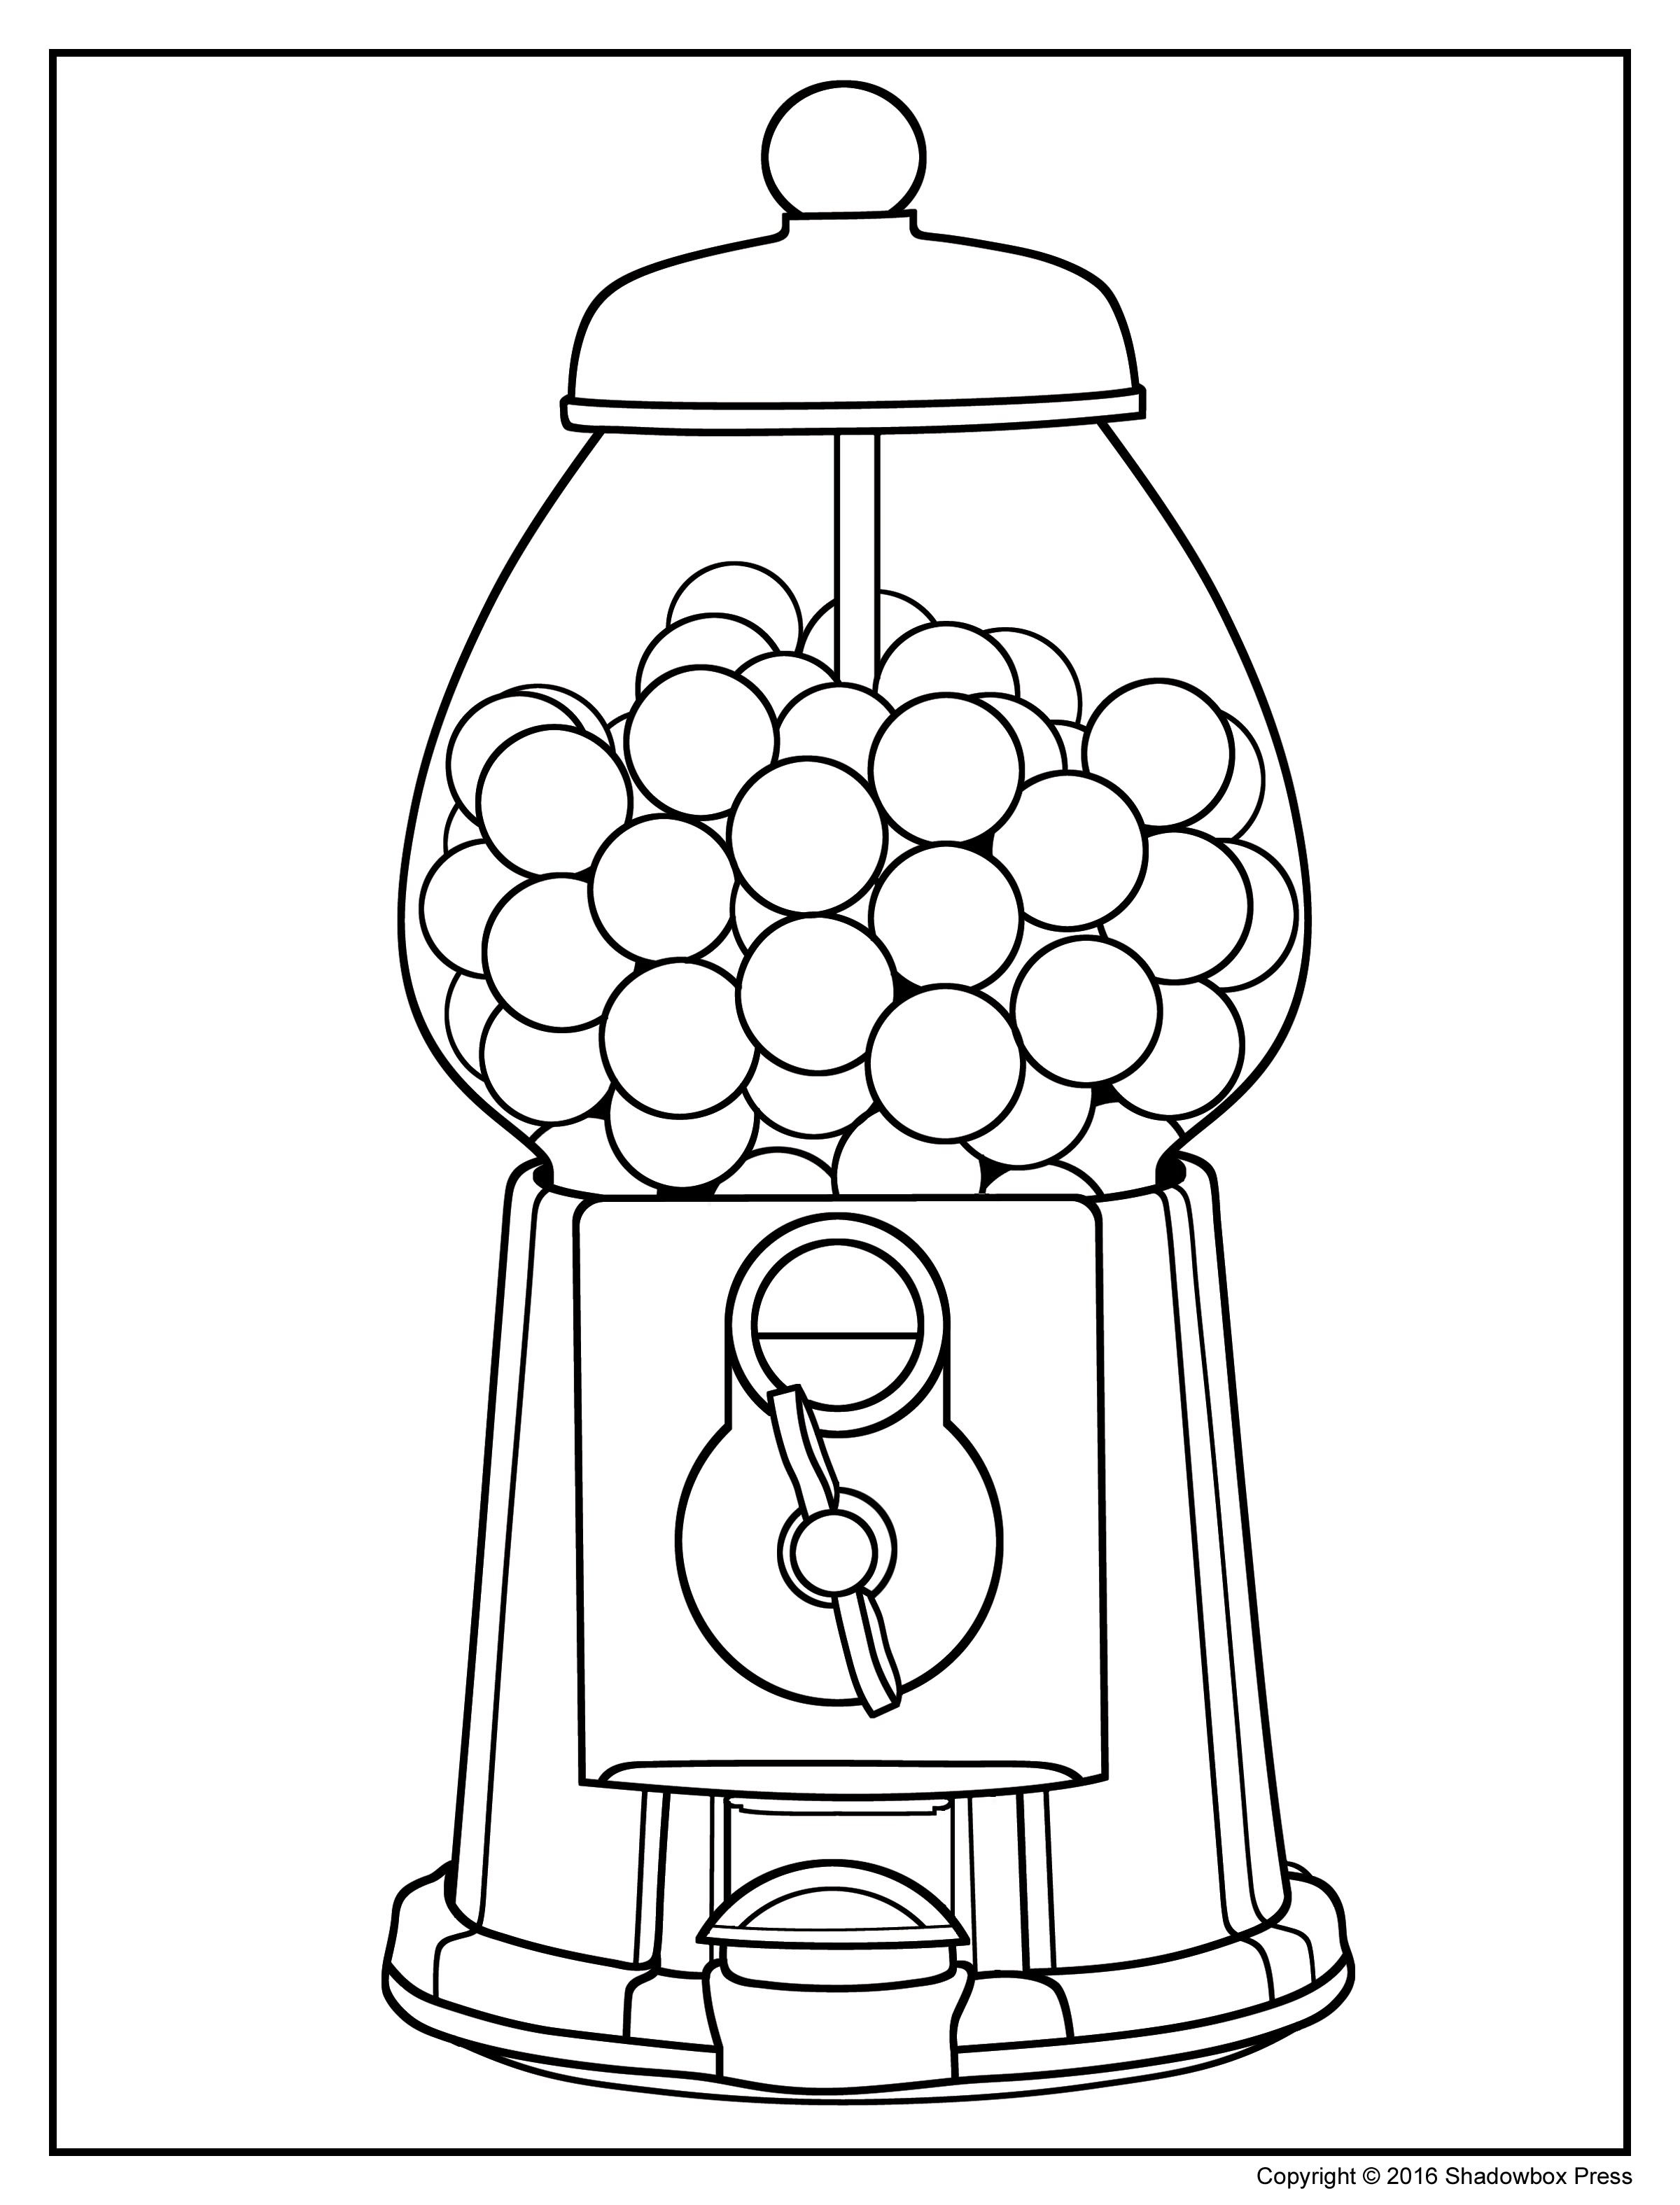 Free Downloadable Coloring Pages for Adults with Dementia to Print ...